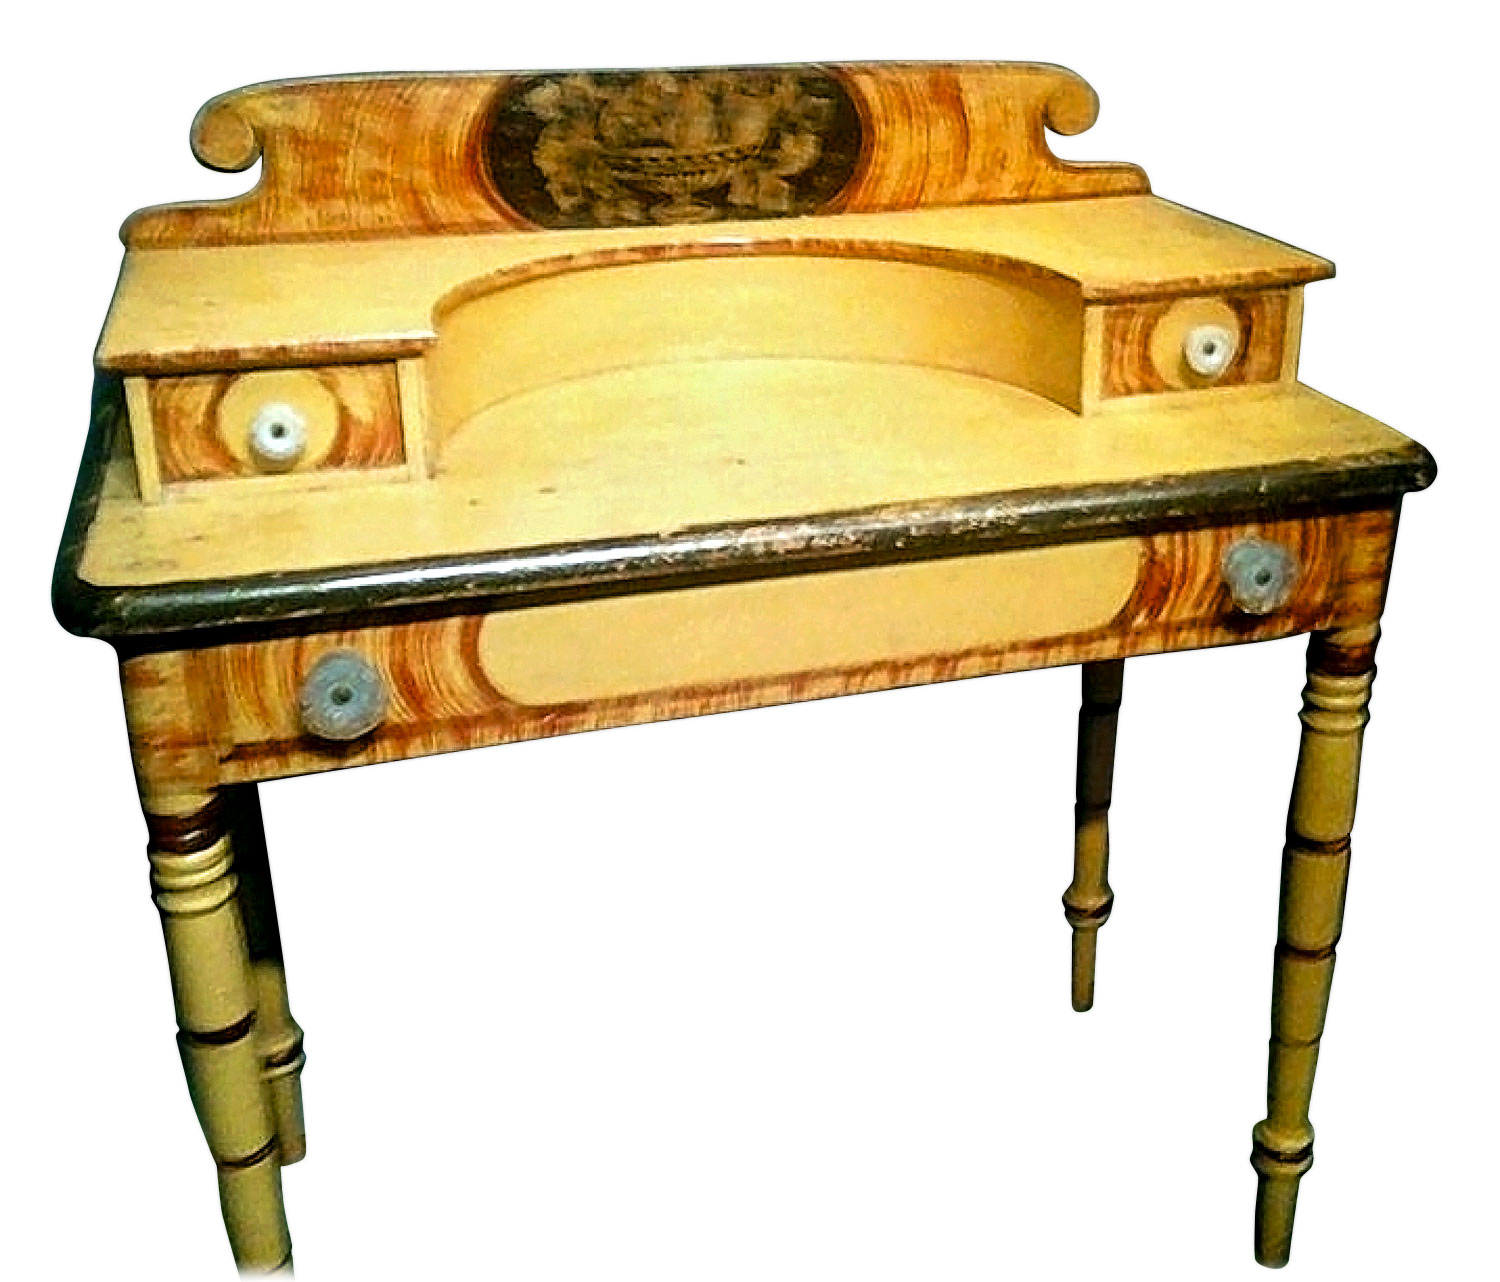 Dressing table, David Colby (active c. 1835), Croydon, New Hampshire, 1835